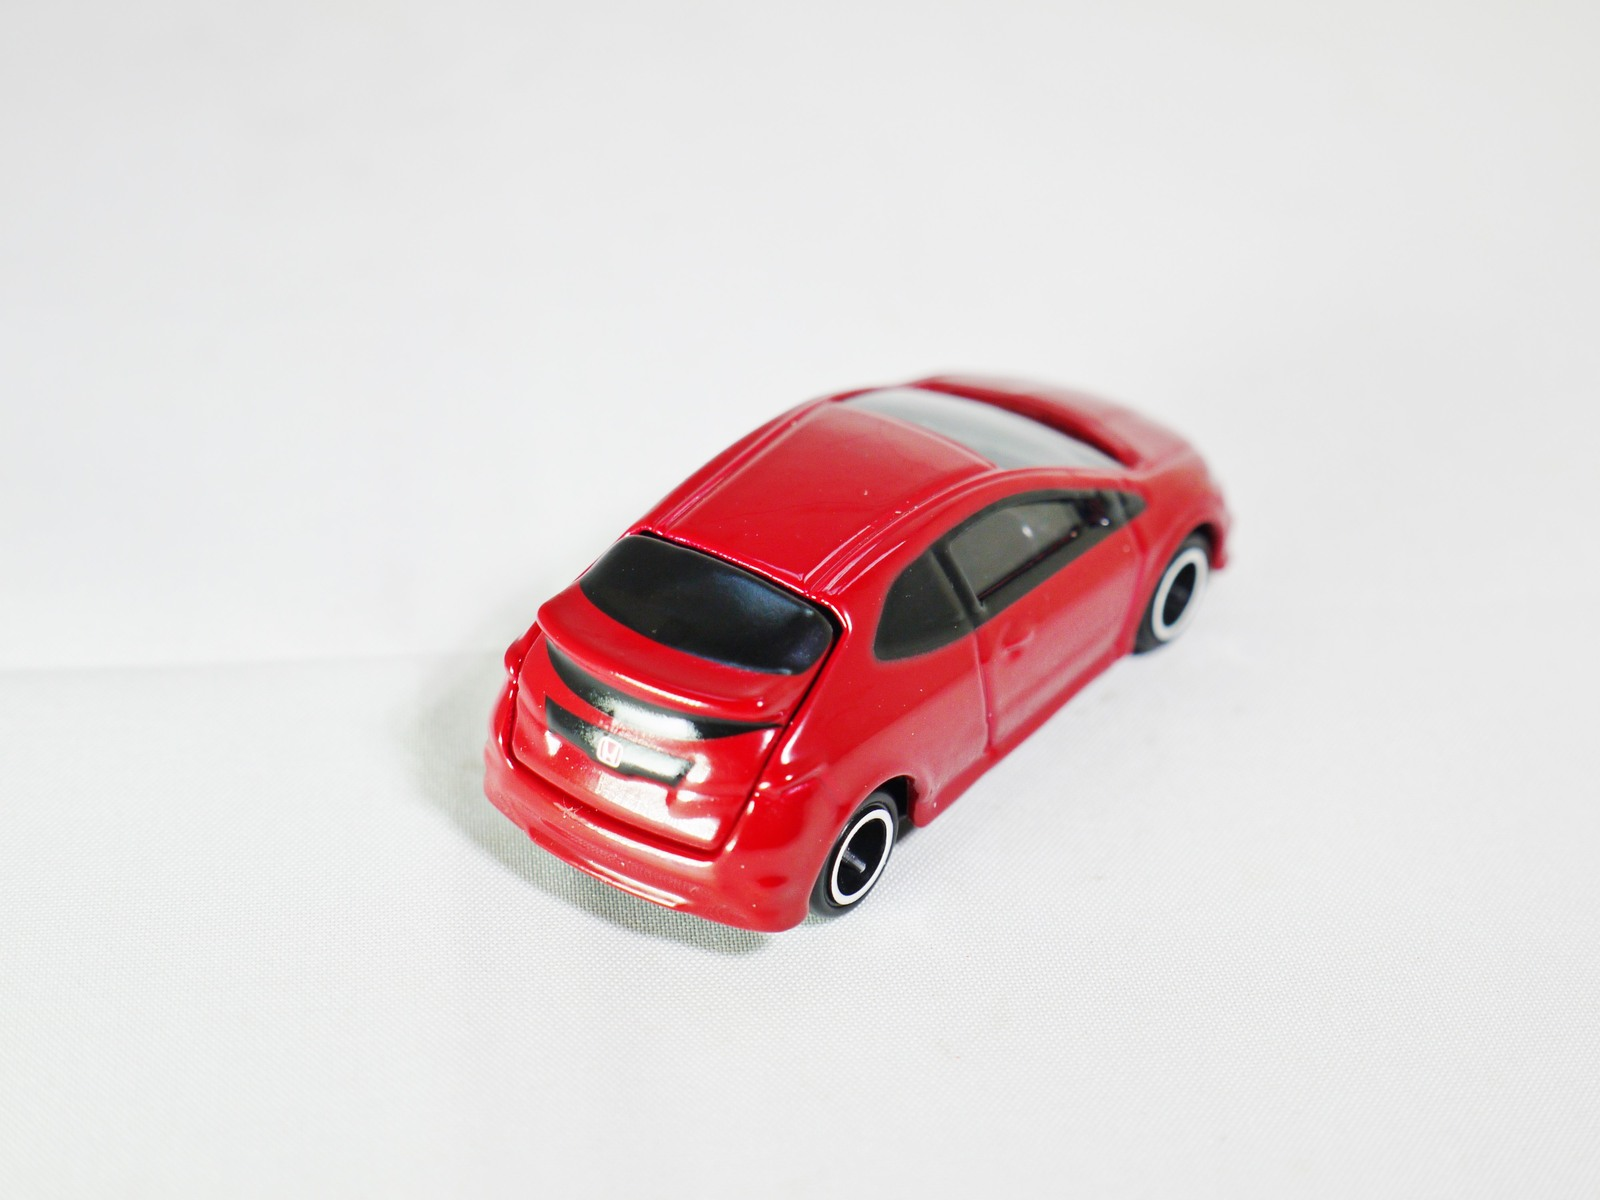 Image Result For Honda Civic Type R Toy Car